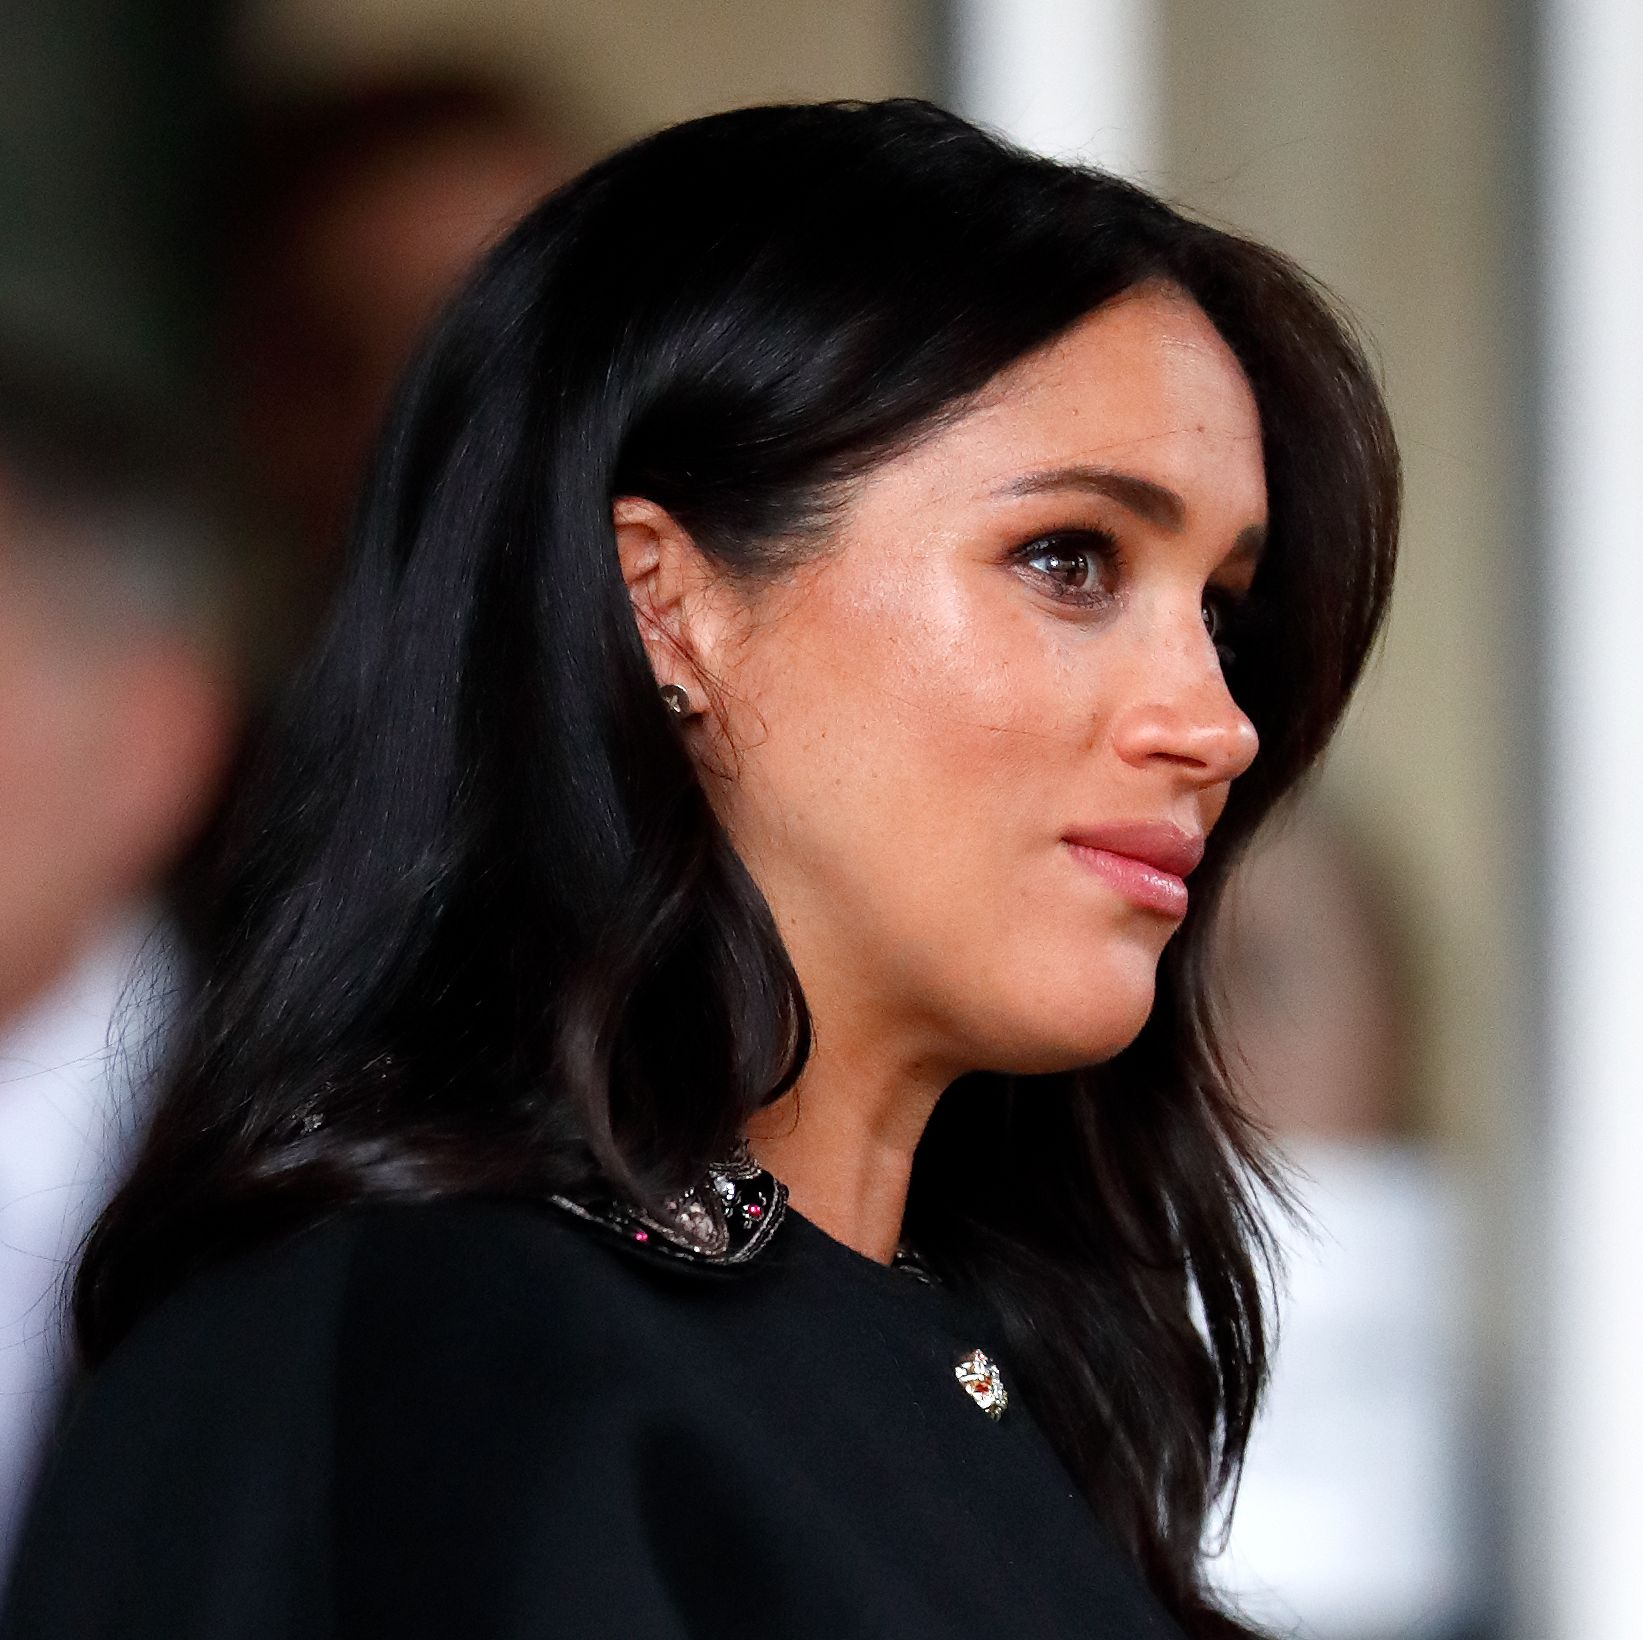 Queen Elizabeth's Former Aide Threw Major Shade at Meghan Markle's NYC Baby Shower